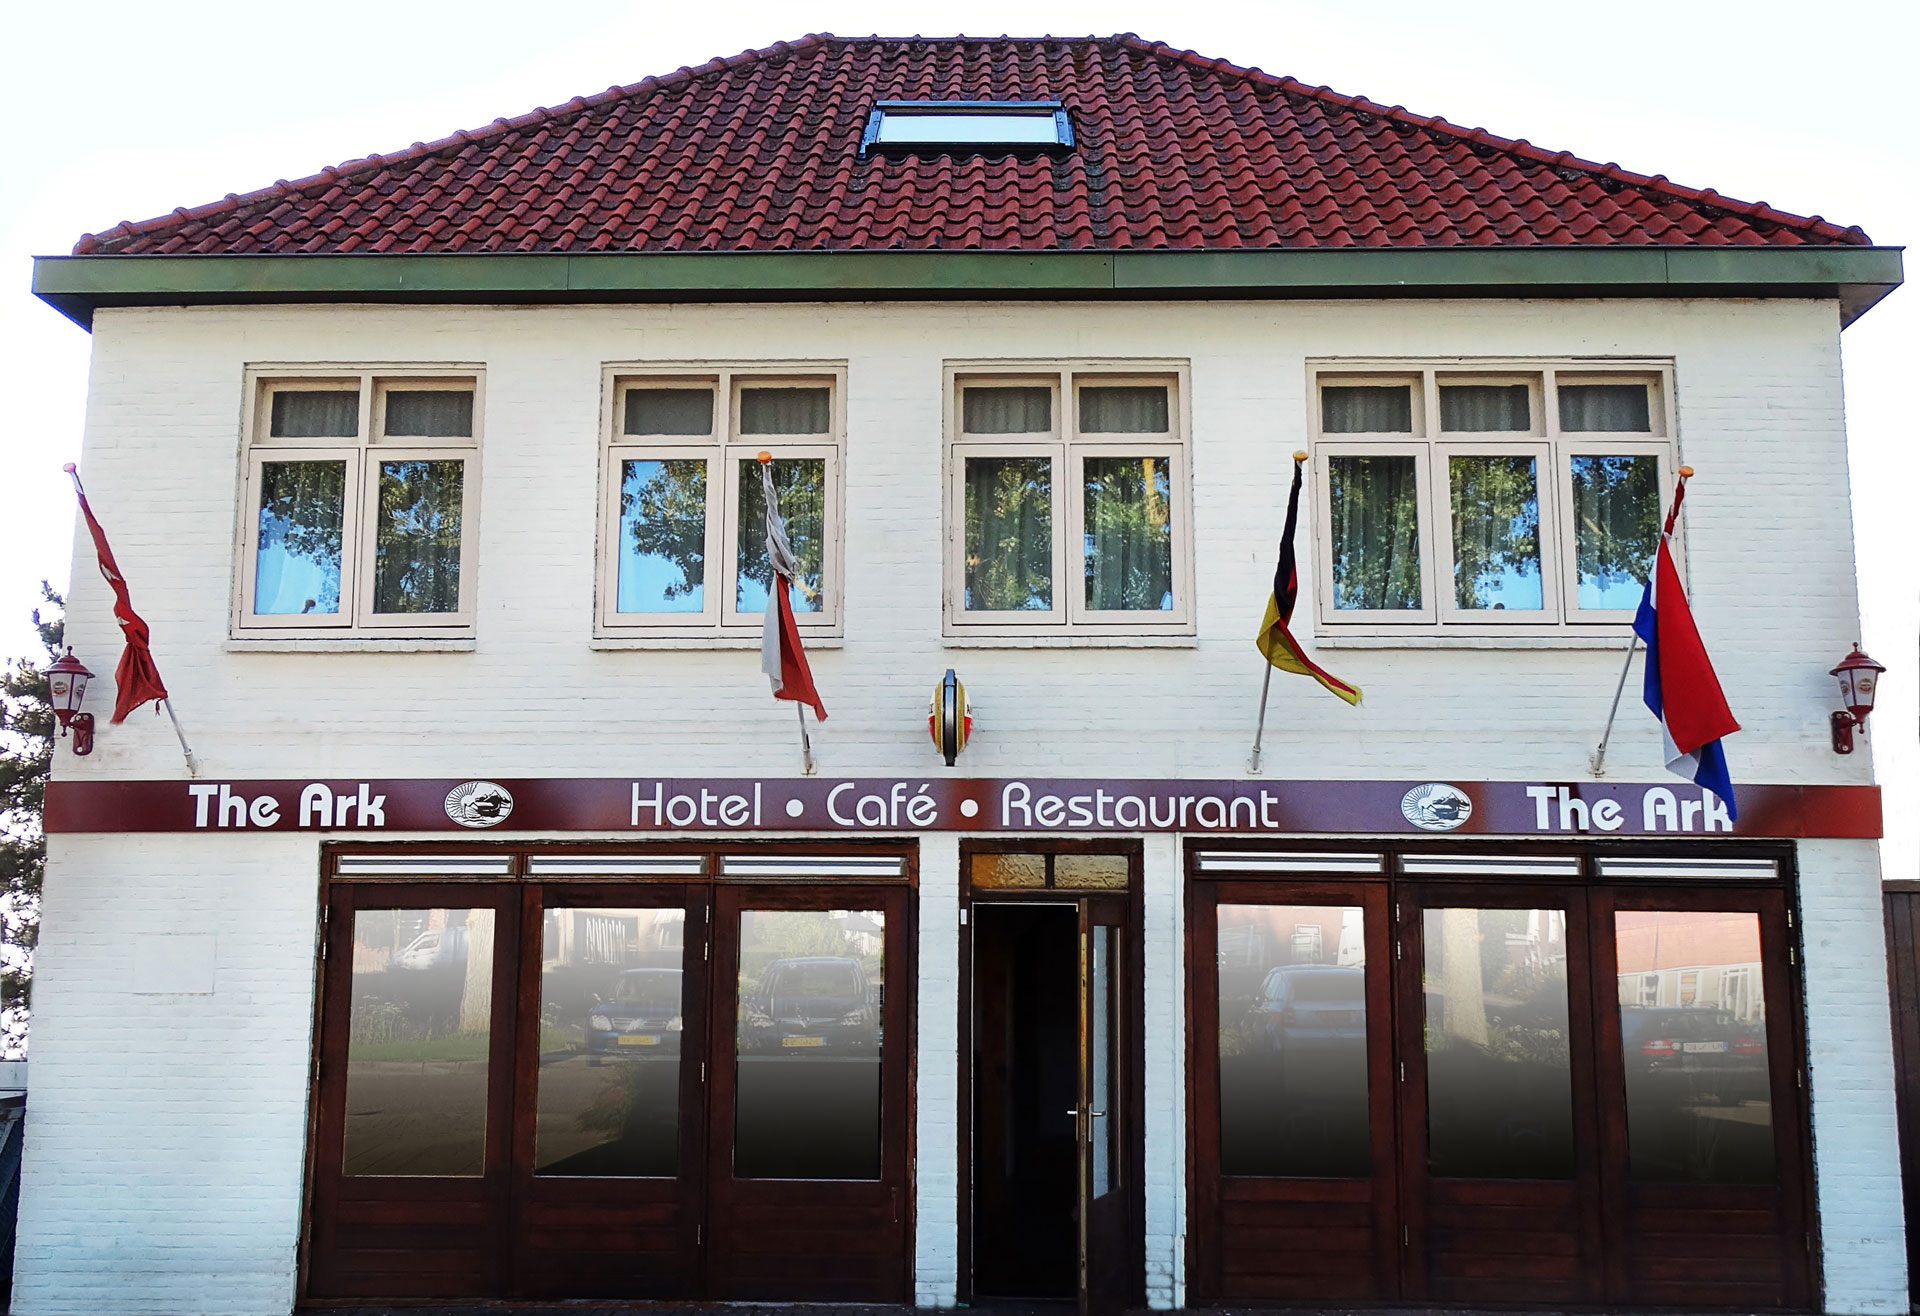 Hotel The Ark 't Zand Noord Holland